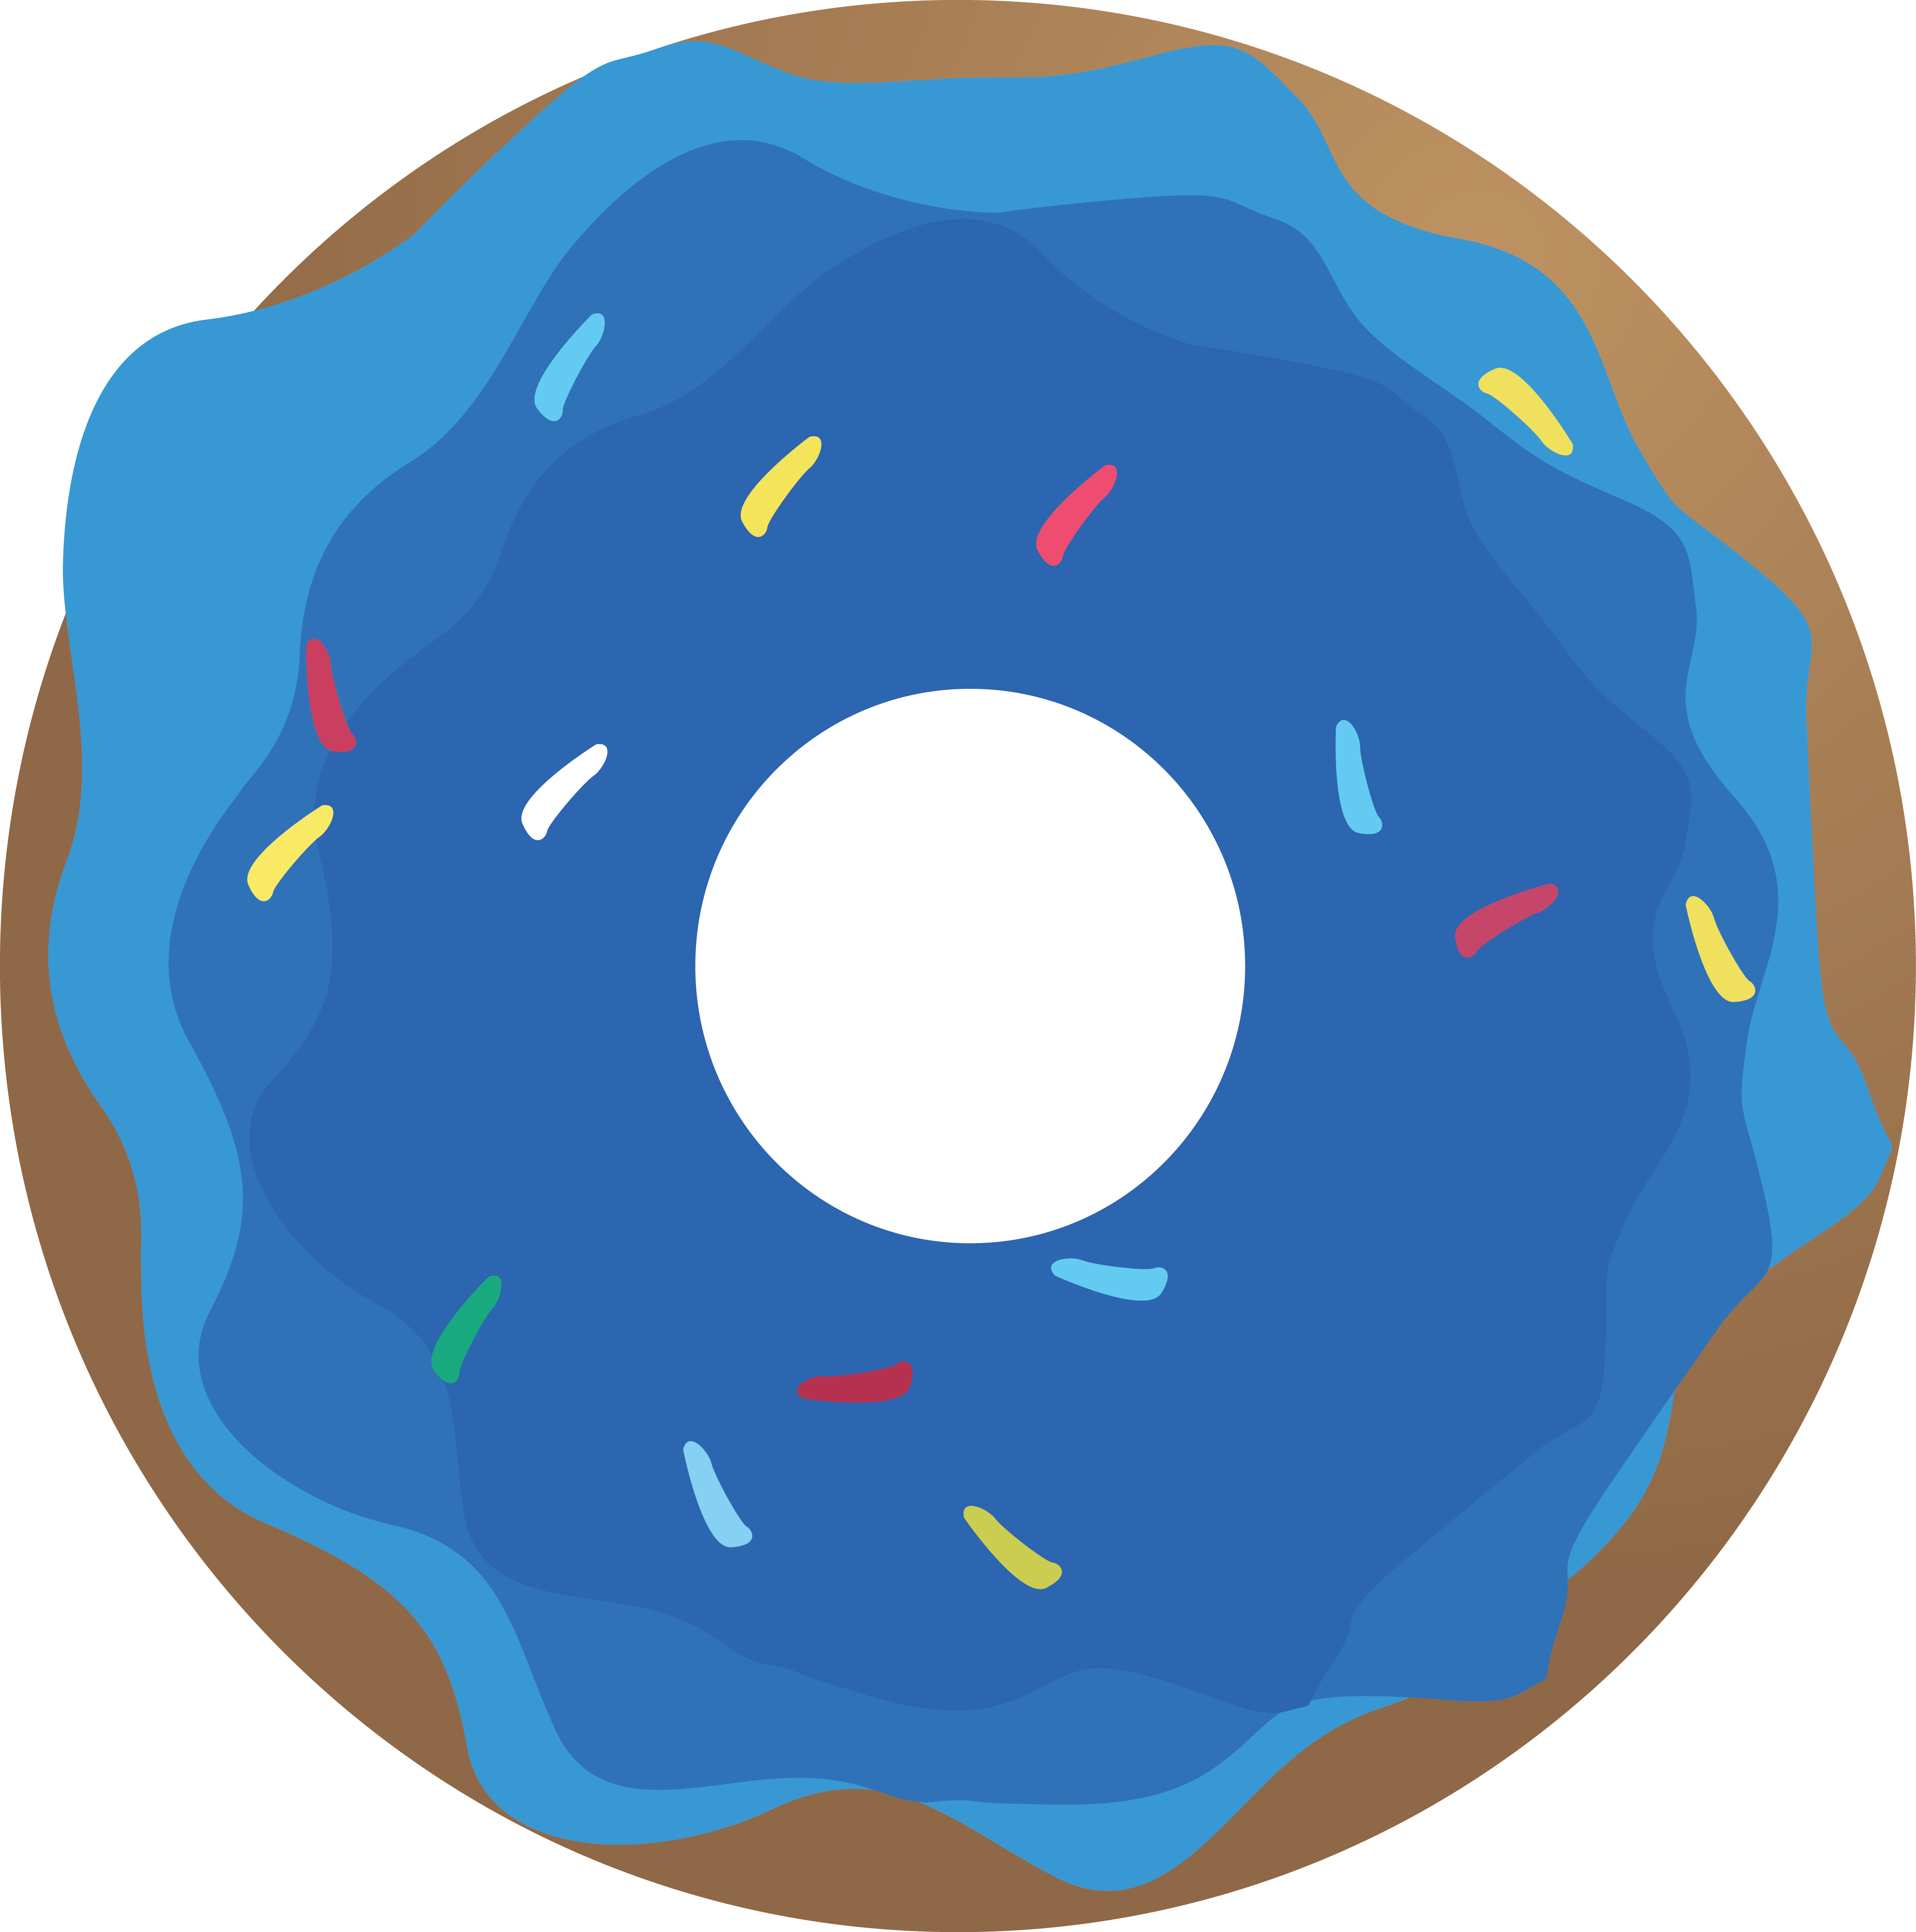 Doughnut clipart blue. Donut cliparts for free